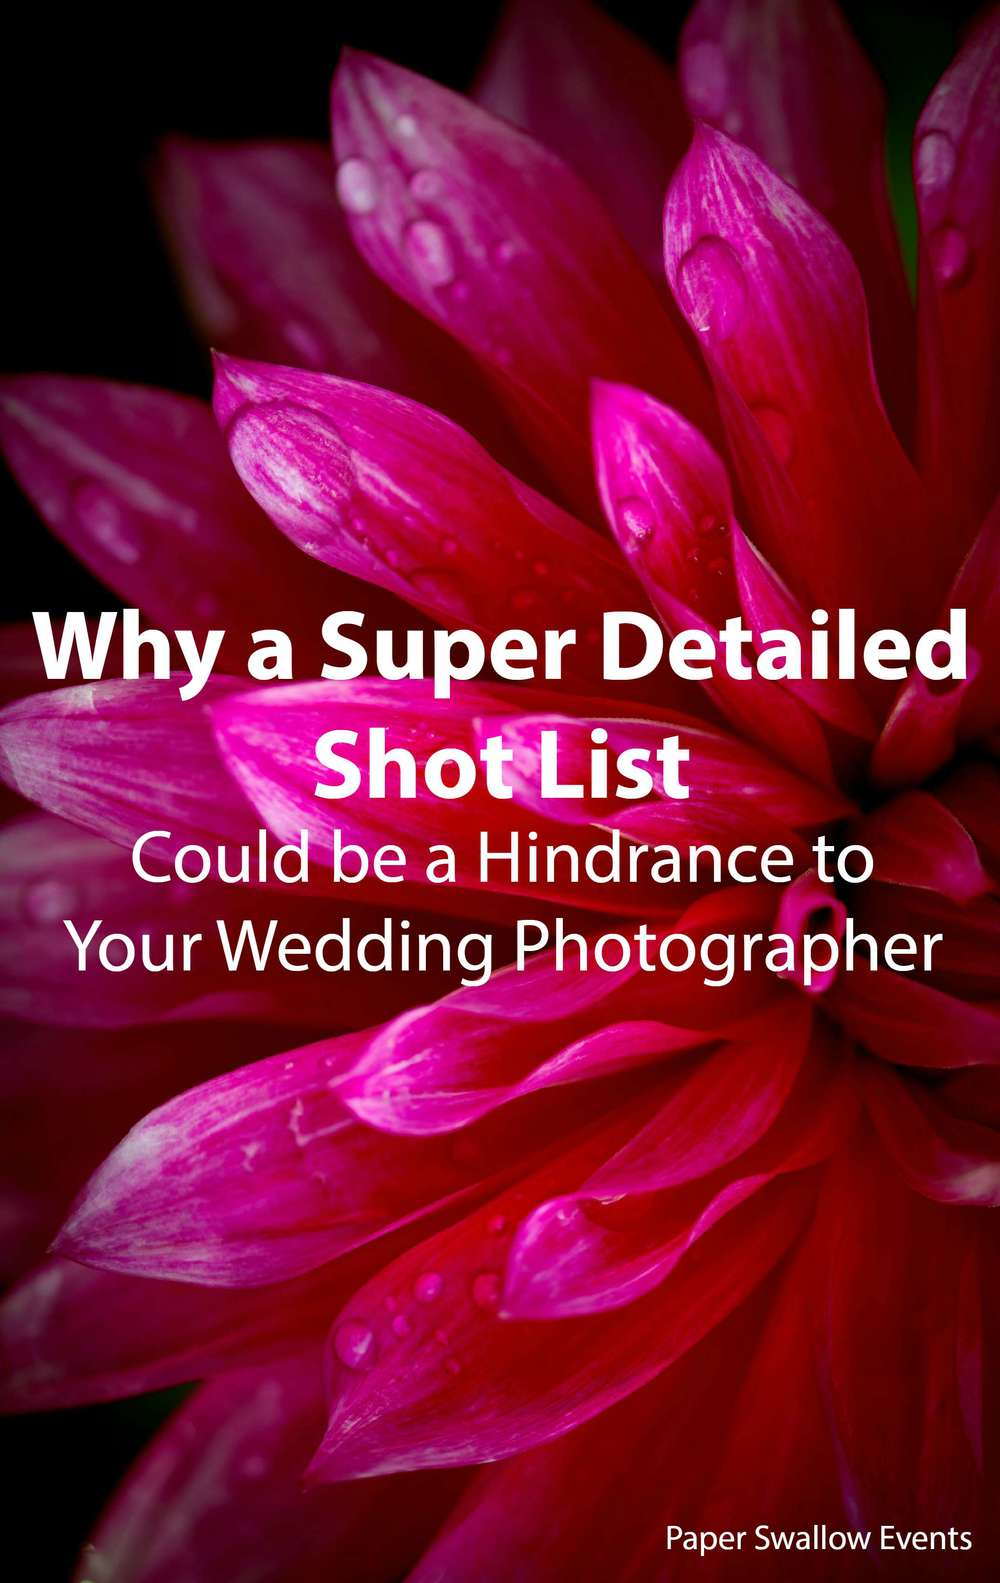 Why a Super Detailed Shot List Could be a Hindrance to Your Wedding Photographer - Paper Swallow Events @paperswalloweve #wedding #photographer